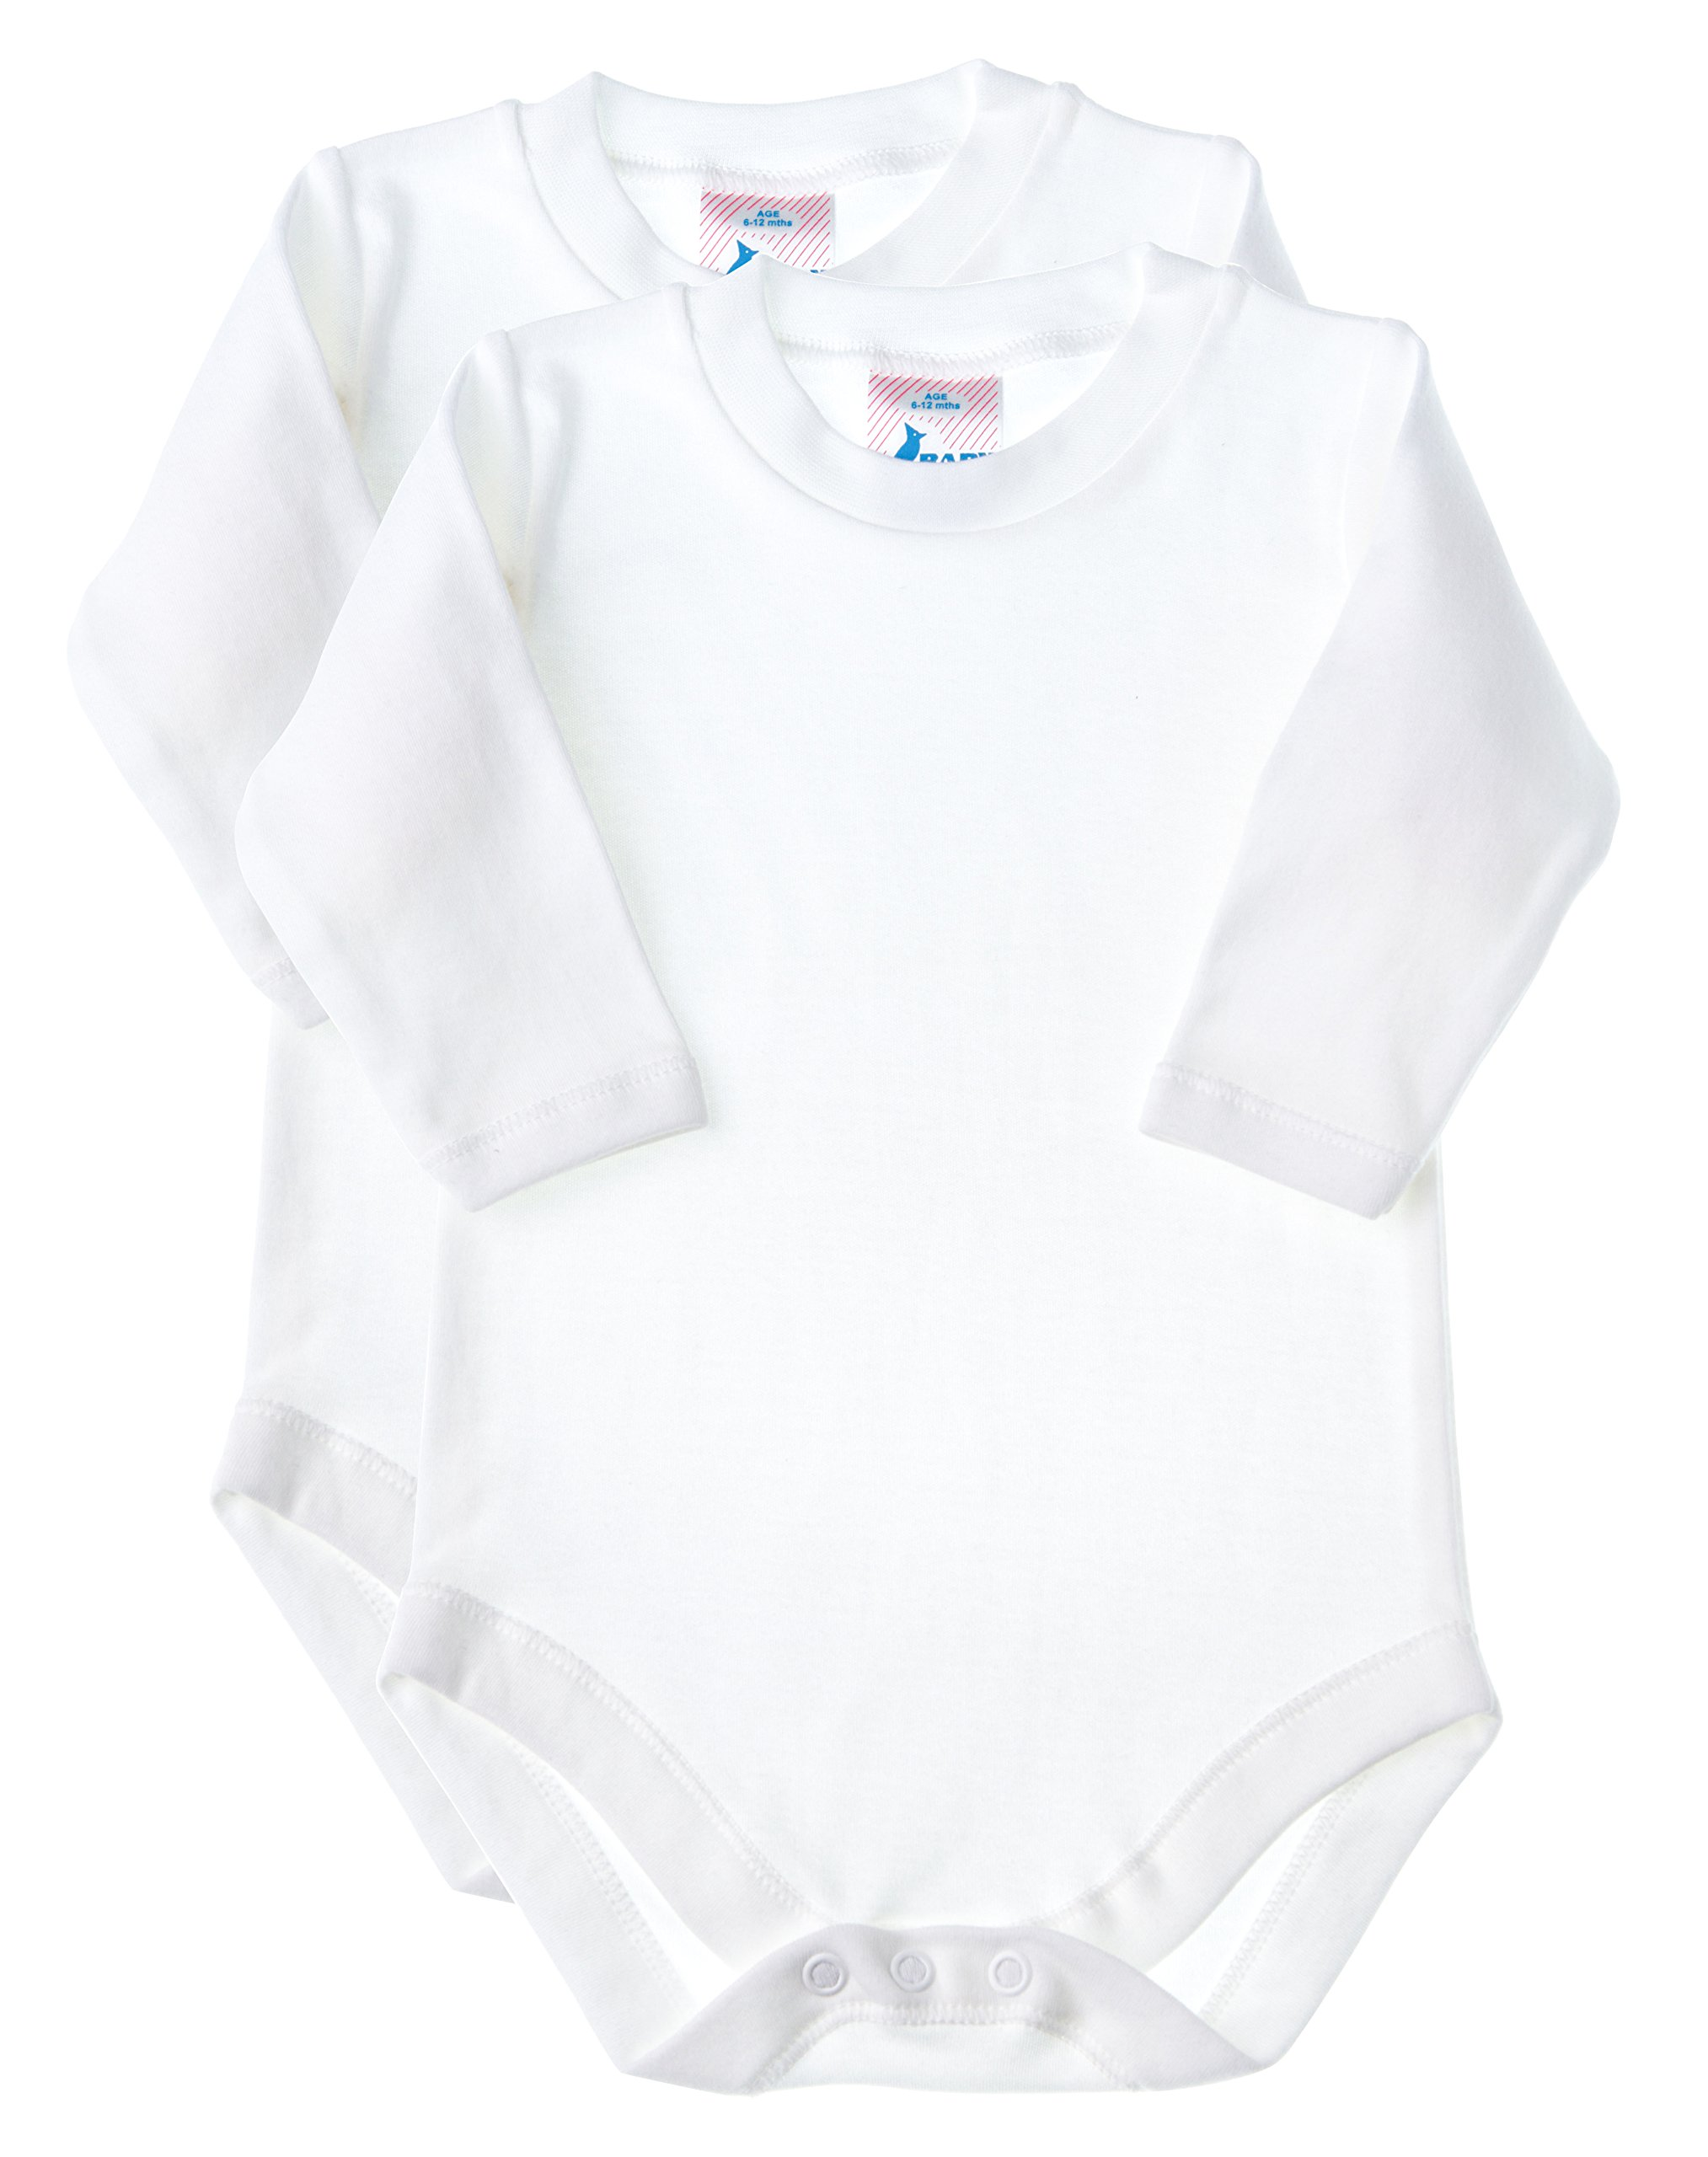 Baby Jay Soft Cotton Onesies, Long Sleeve Unisex Bodysuit, WSLR 3-6 2-Pack by Baby Jay (Image #1)